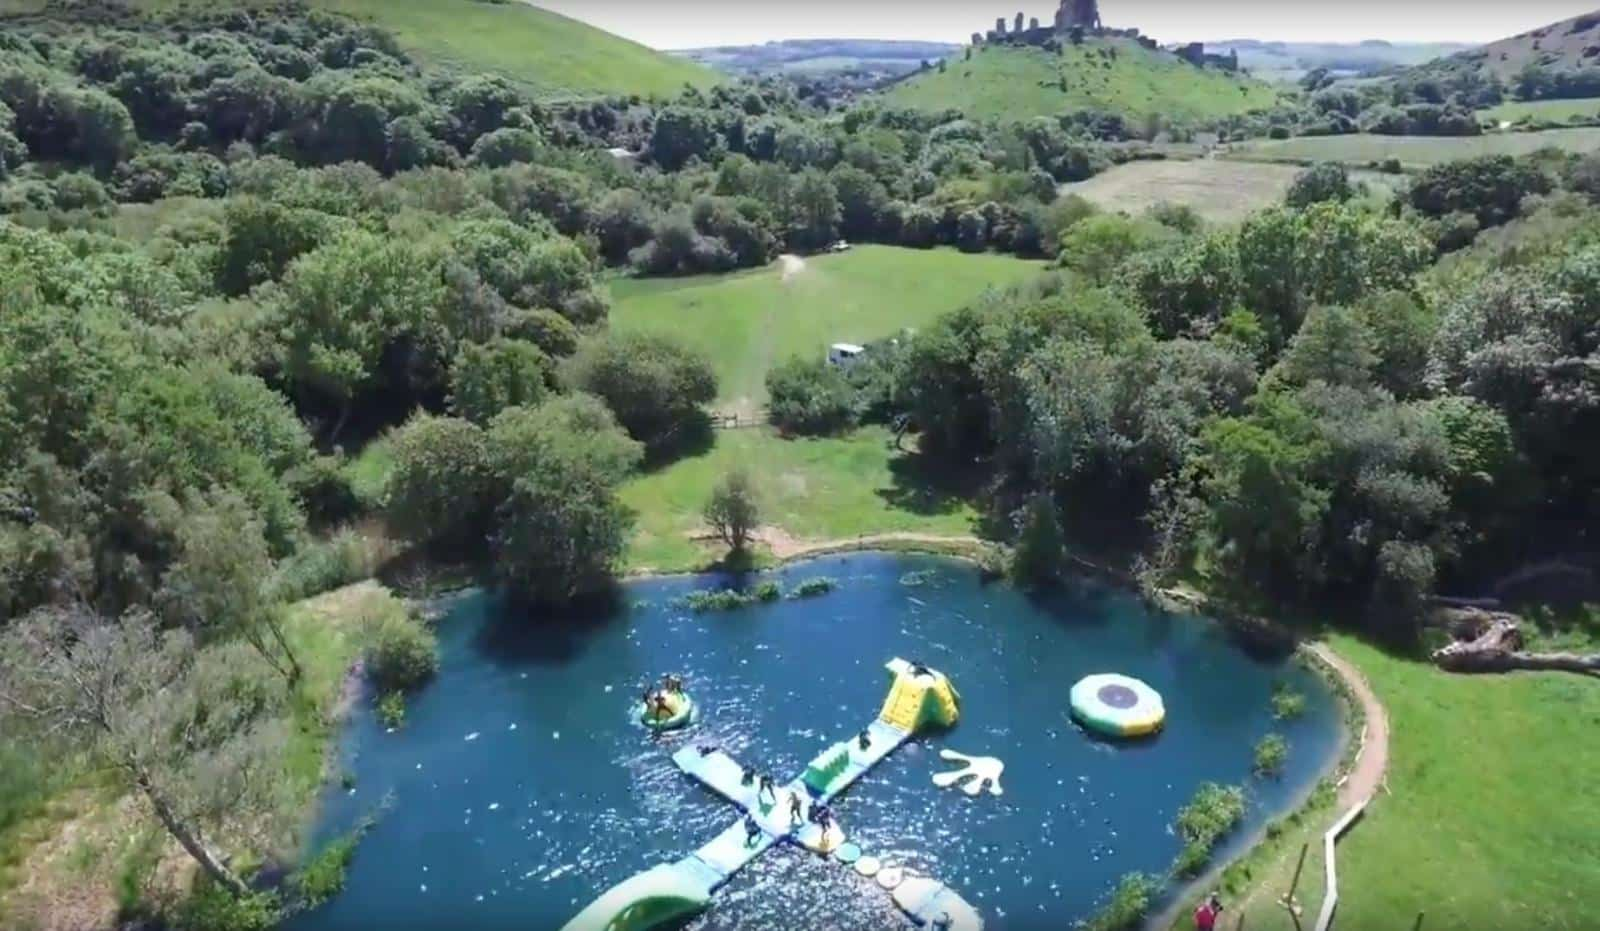 A five minute drive away is Dorset Water Park. Overlooking Corfe Castle it is fabulous fun with two giant lakes filled with many different inflatable obstacle challenges to tackle.